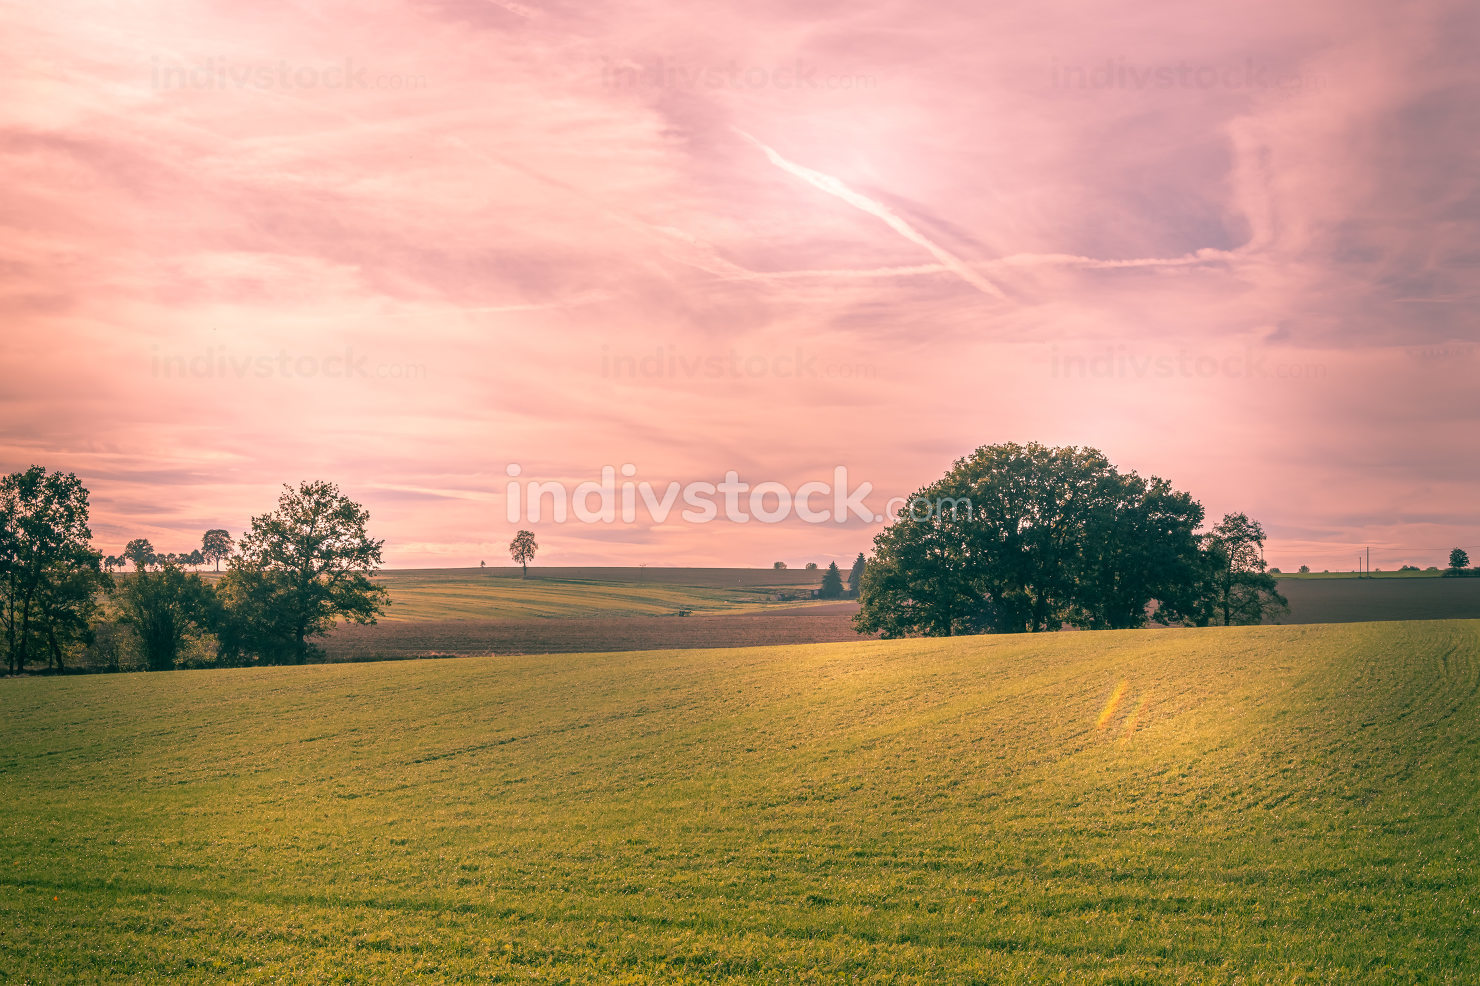 Colorful pink sky at sunset over a green field